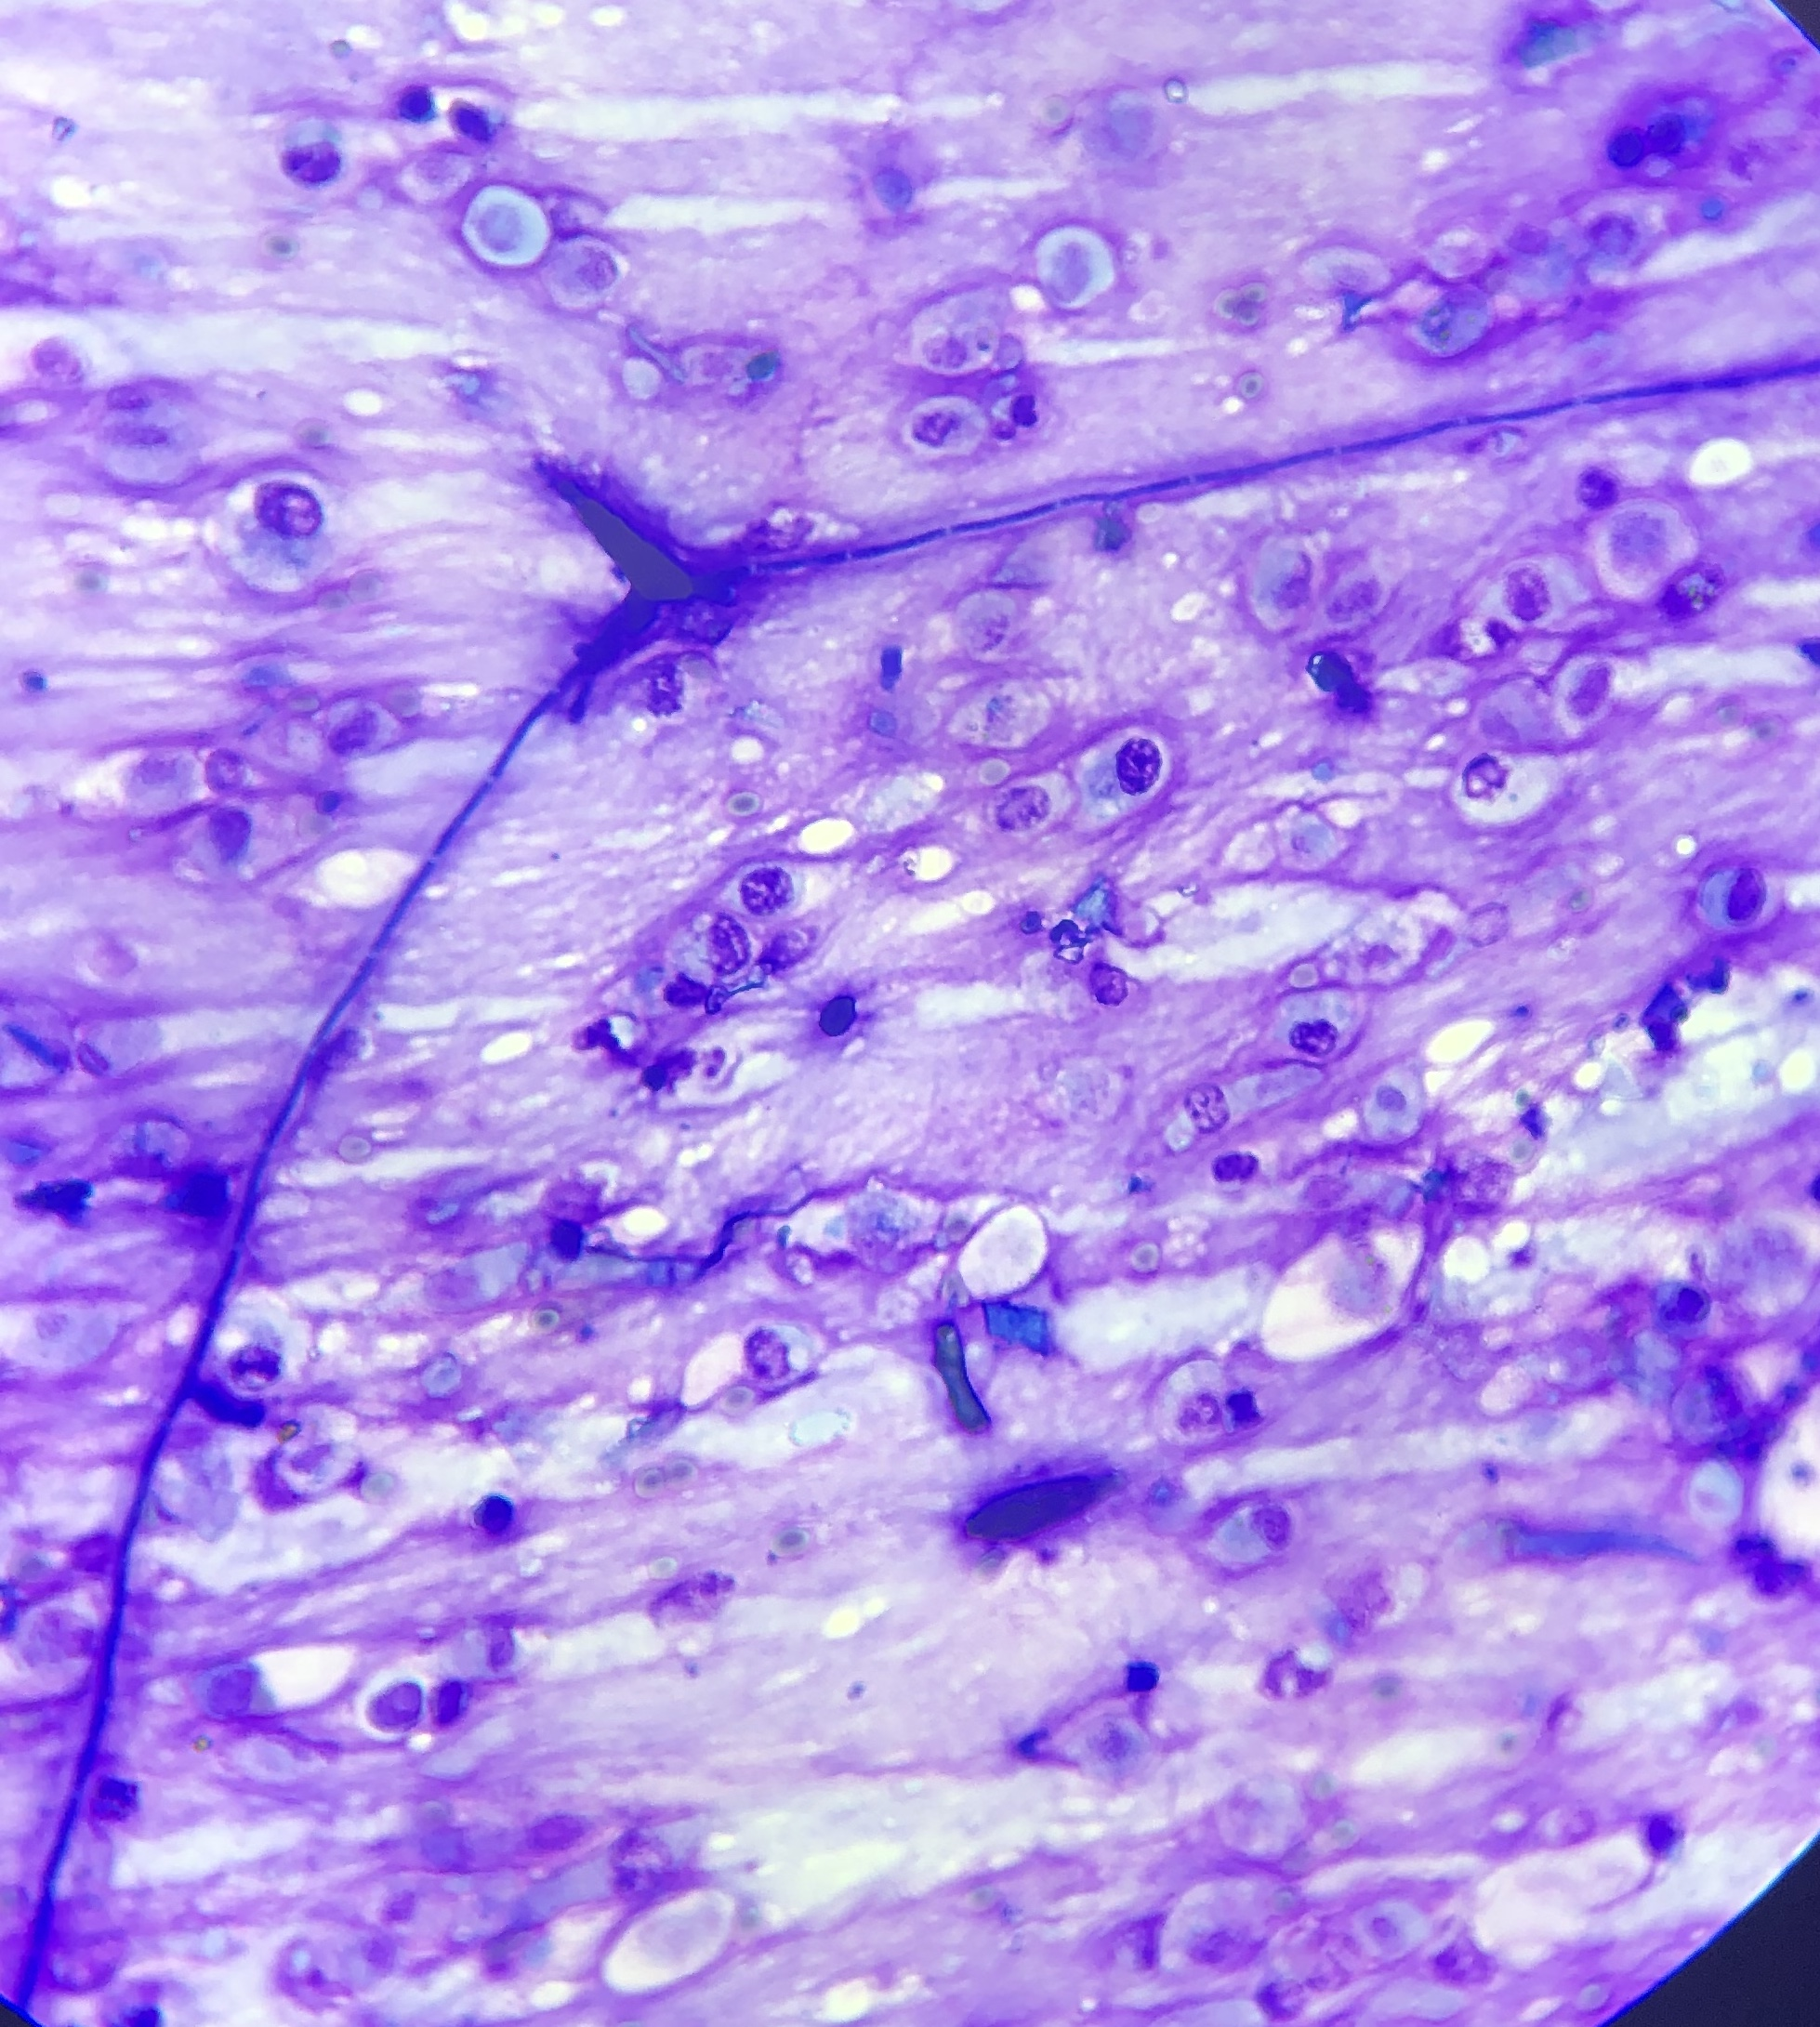 Microscope picture of a germinating fungal spore in a respiratory sample - an indication of inhalation of fungal spores in the airways and subsequent infection from the mould.